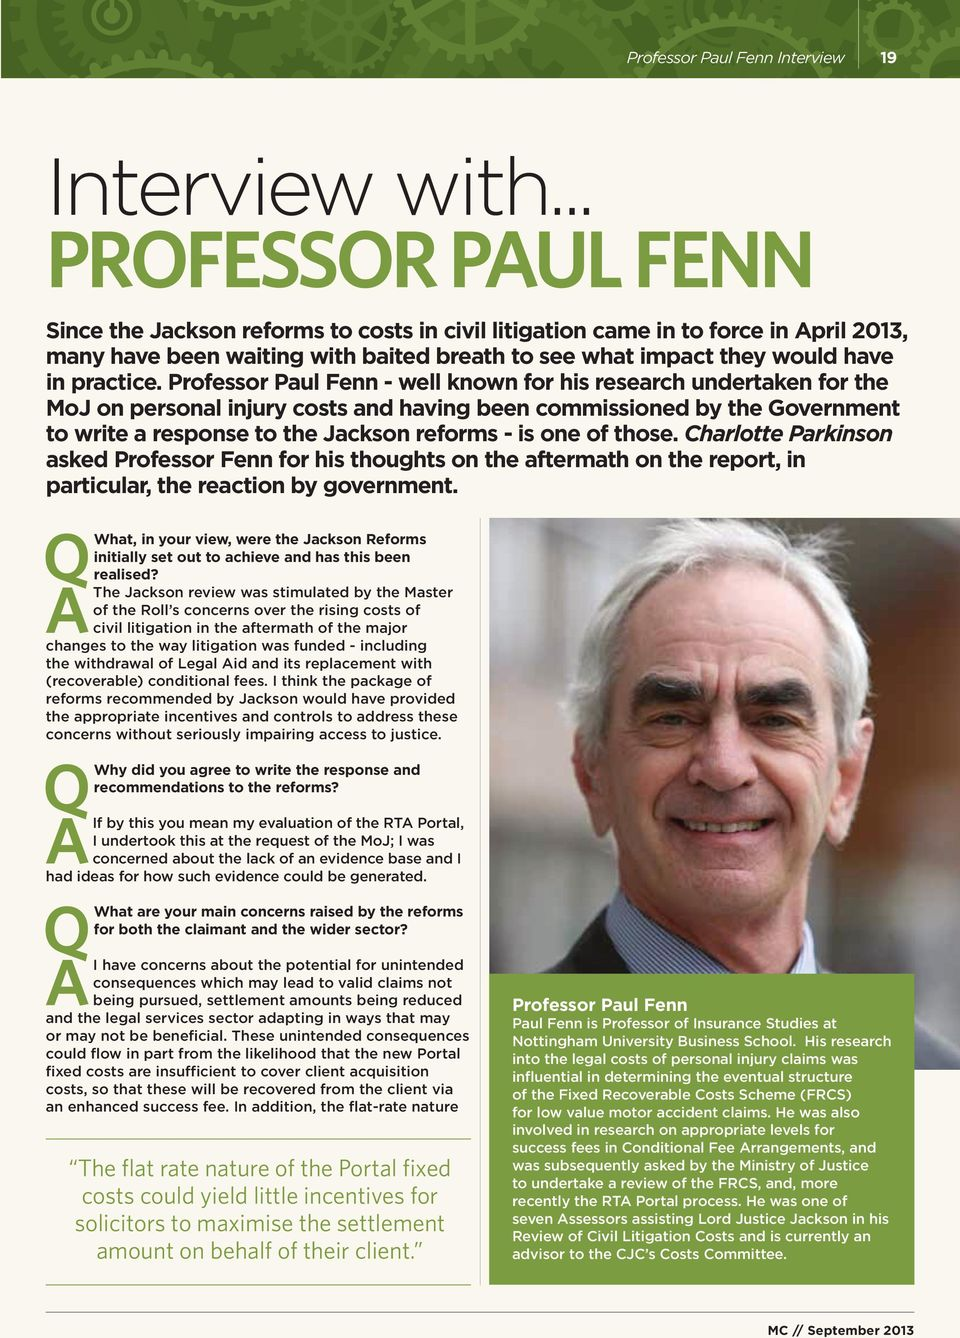 Professor Paul Fenn - well known for his research undertaken for the MoJ on personal injury costs and having been commissioned by the Government to write a response to the Jackson reforms - is one of